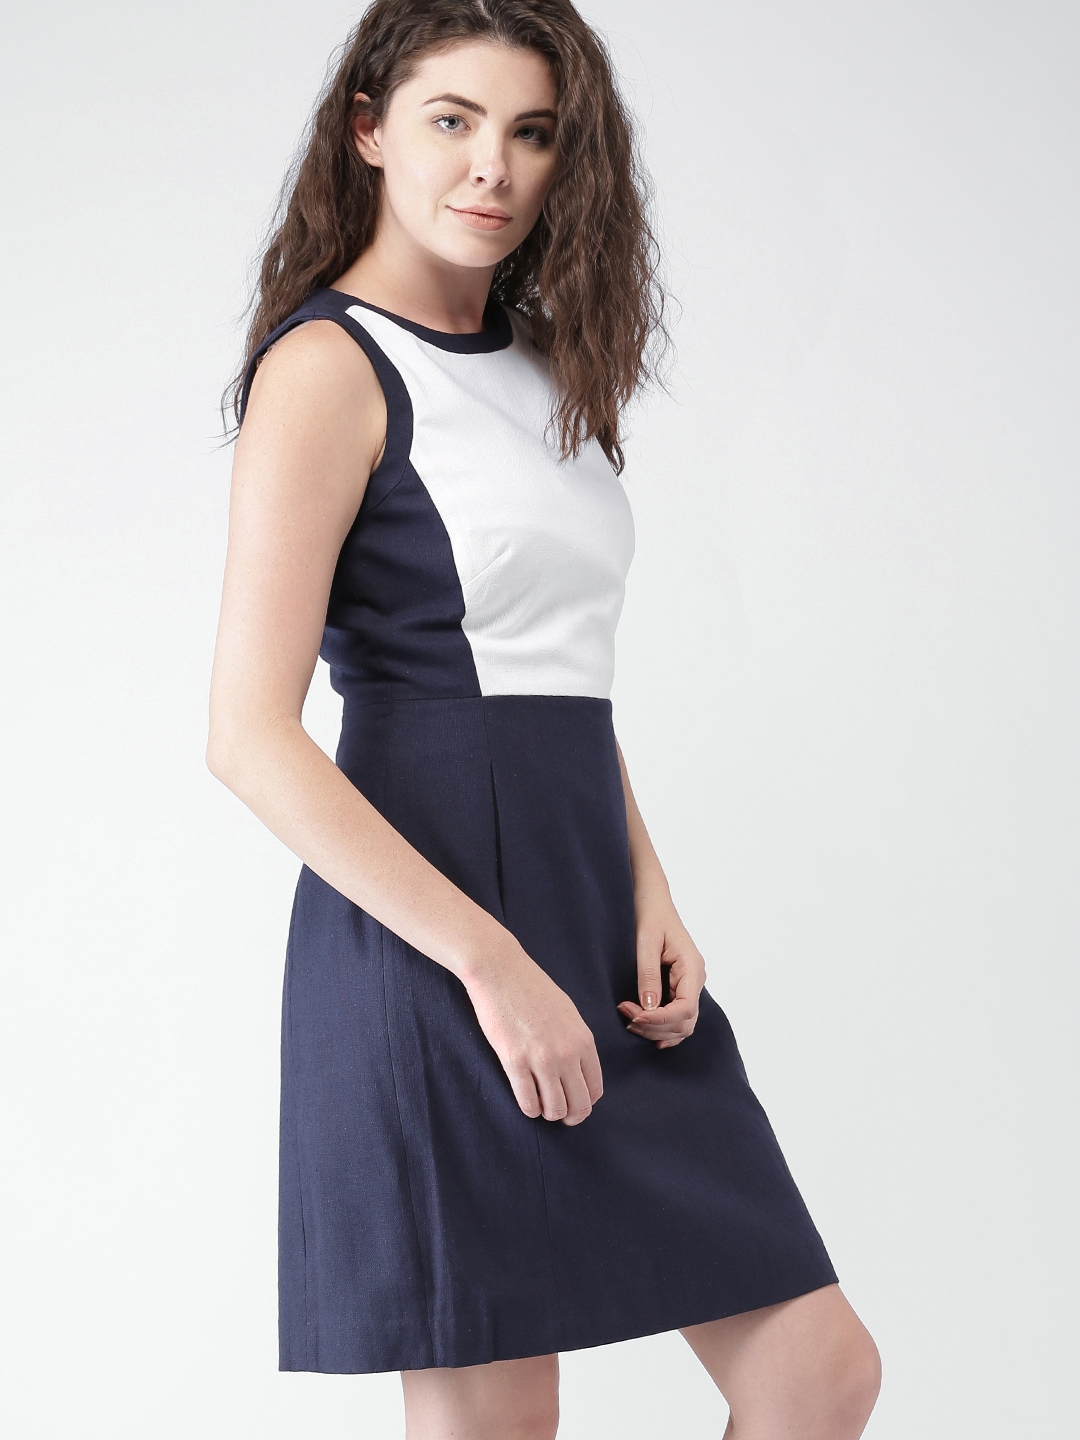 4a91df42e6 Buy Tommy Hilfiger Women Navy & White Solid Fit & Flare Dress ...